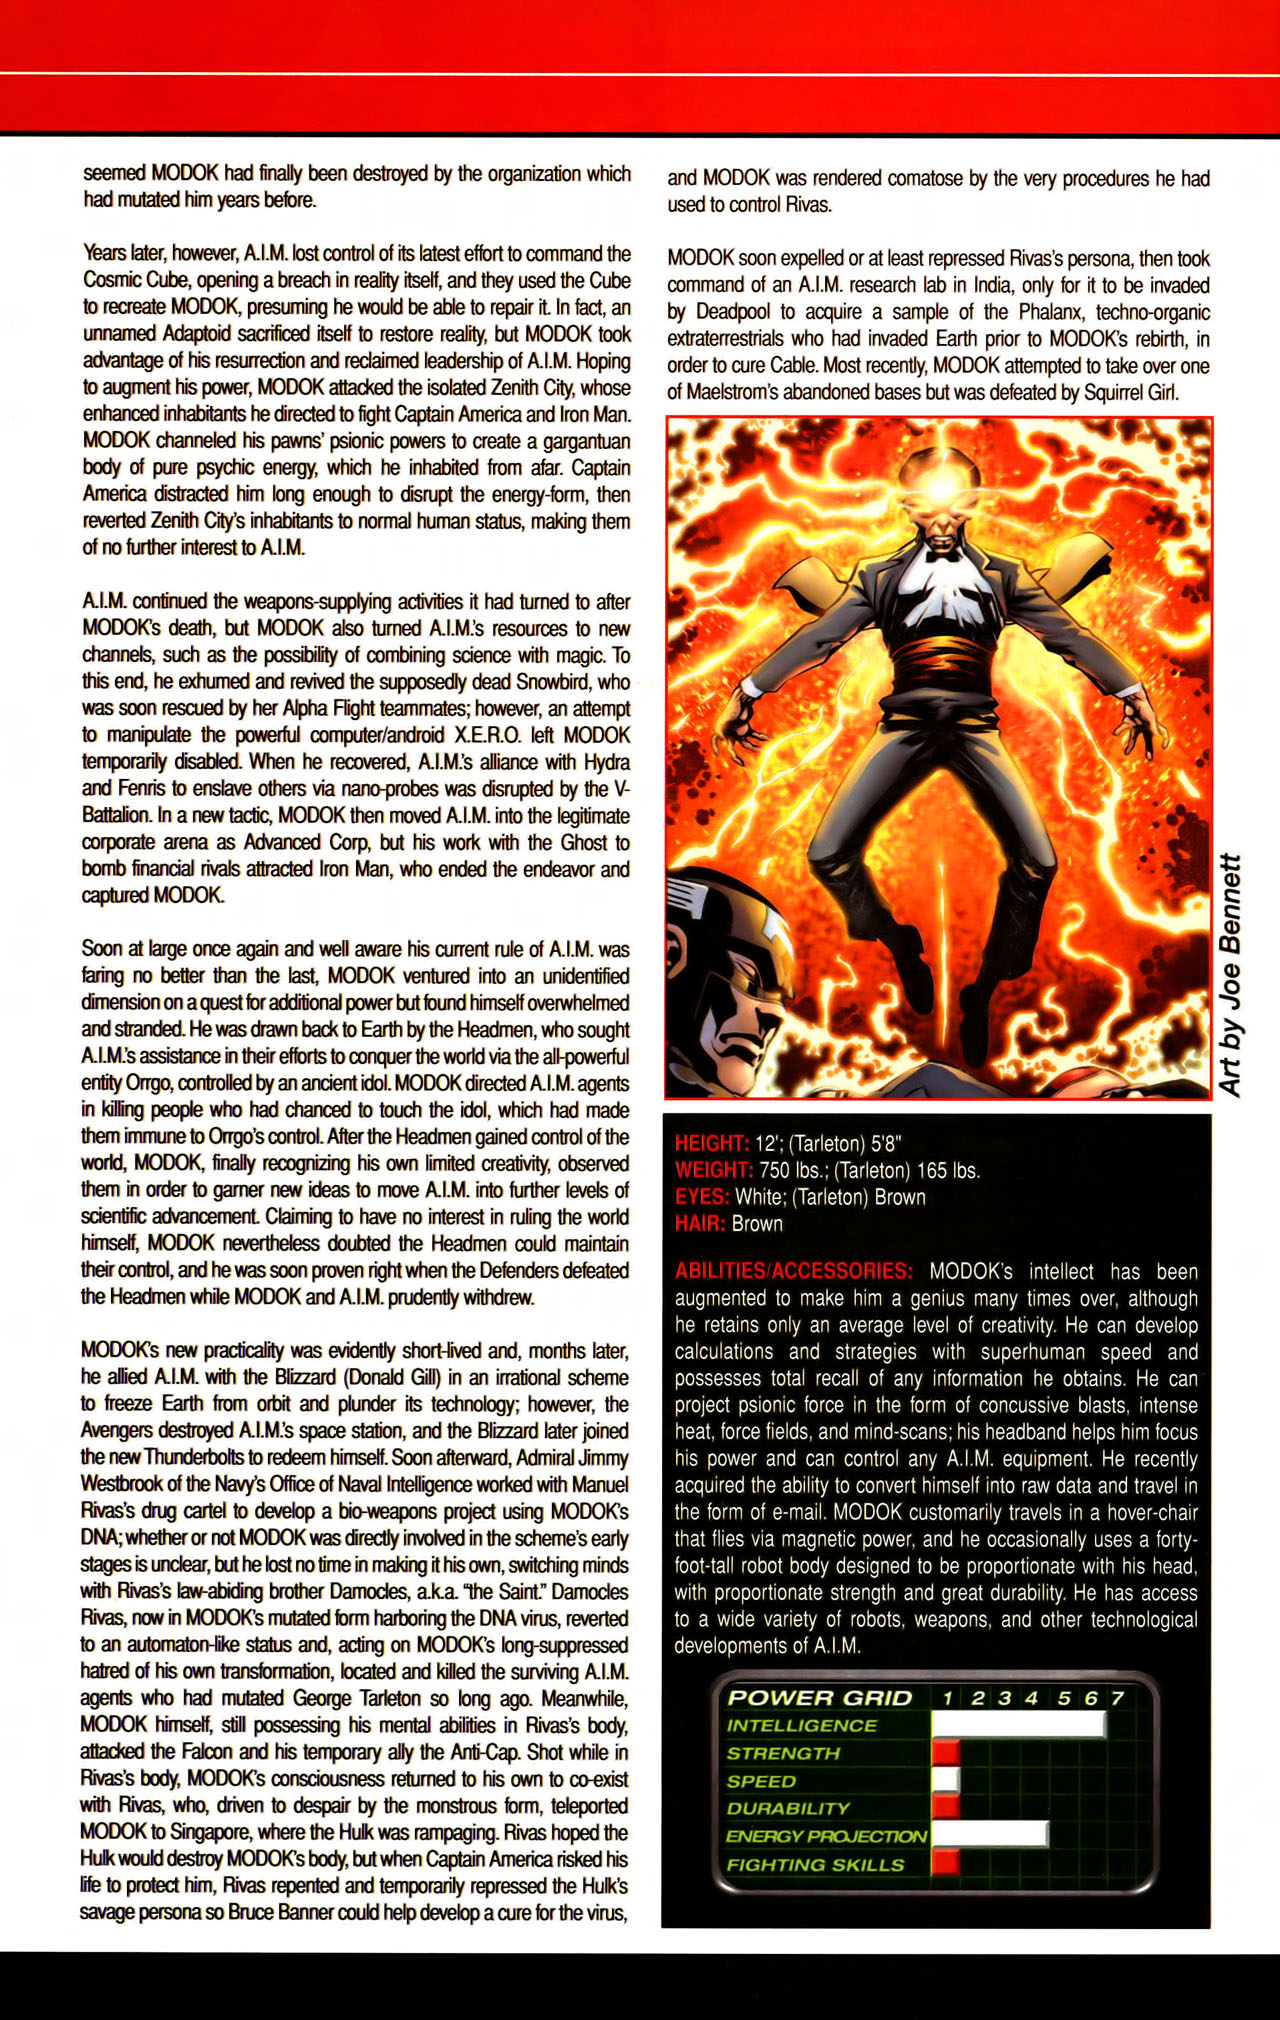 Read online All-New Official Handbook of the Marvel Universe A to Z comic -  Issue #7 - 48